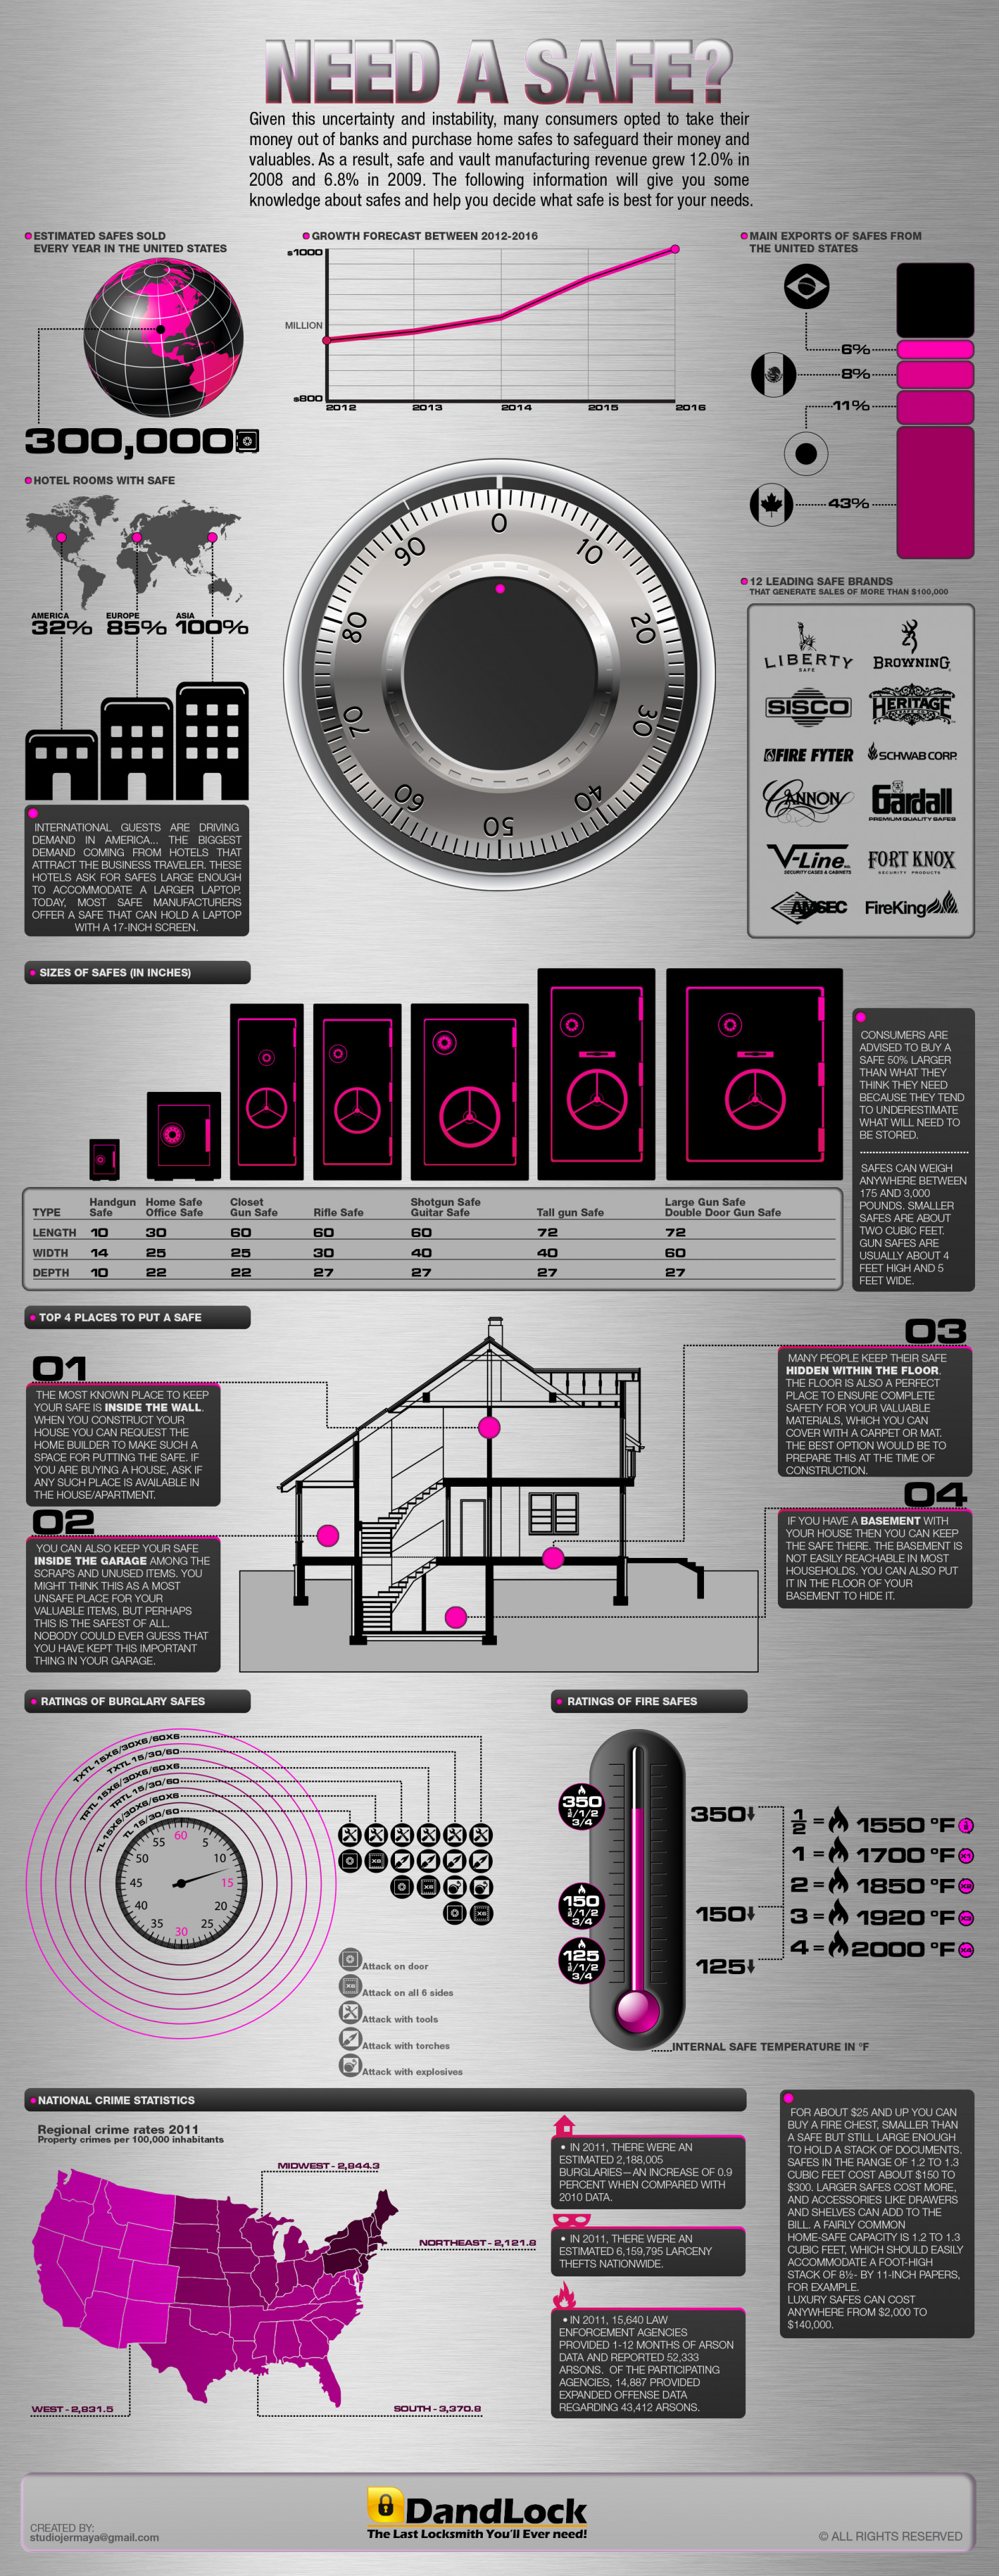 NEED A SAFE? INFOGRAPHIC Infographic